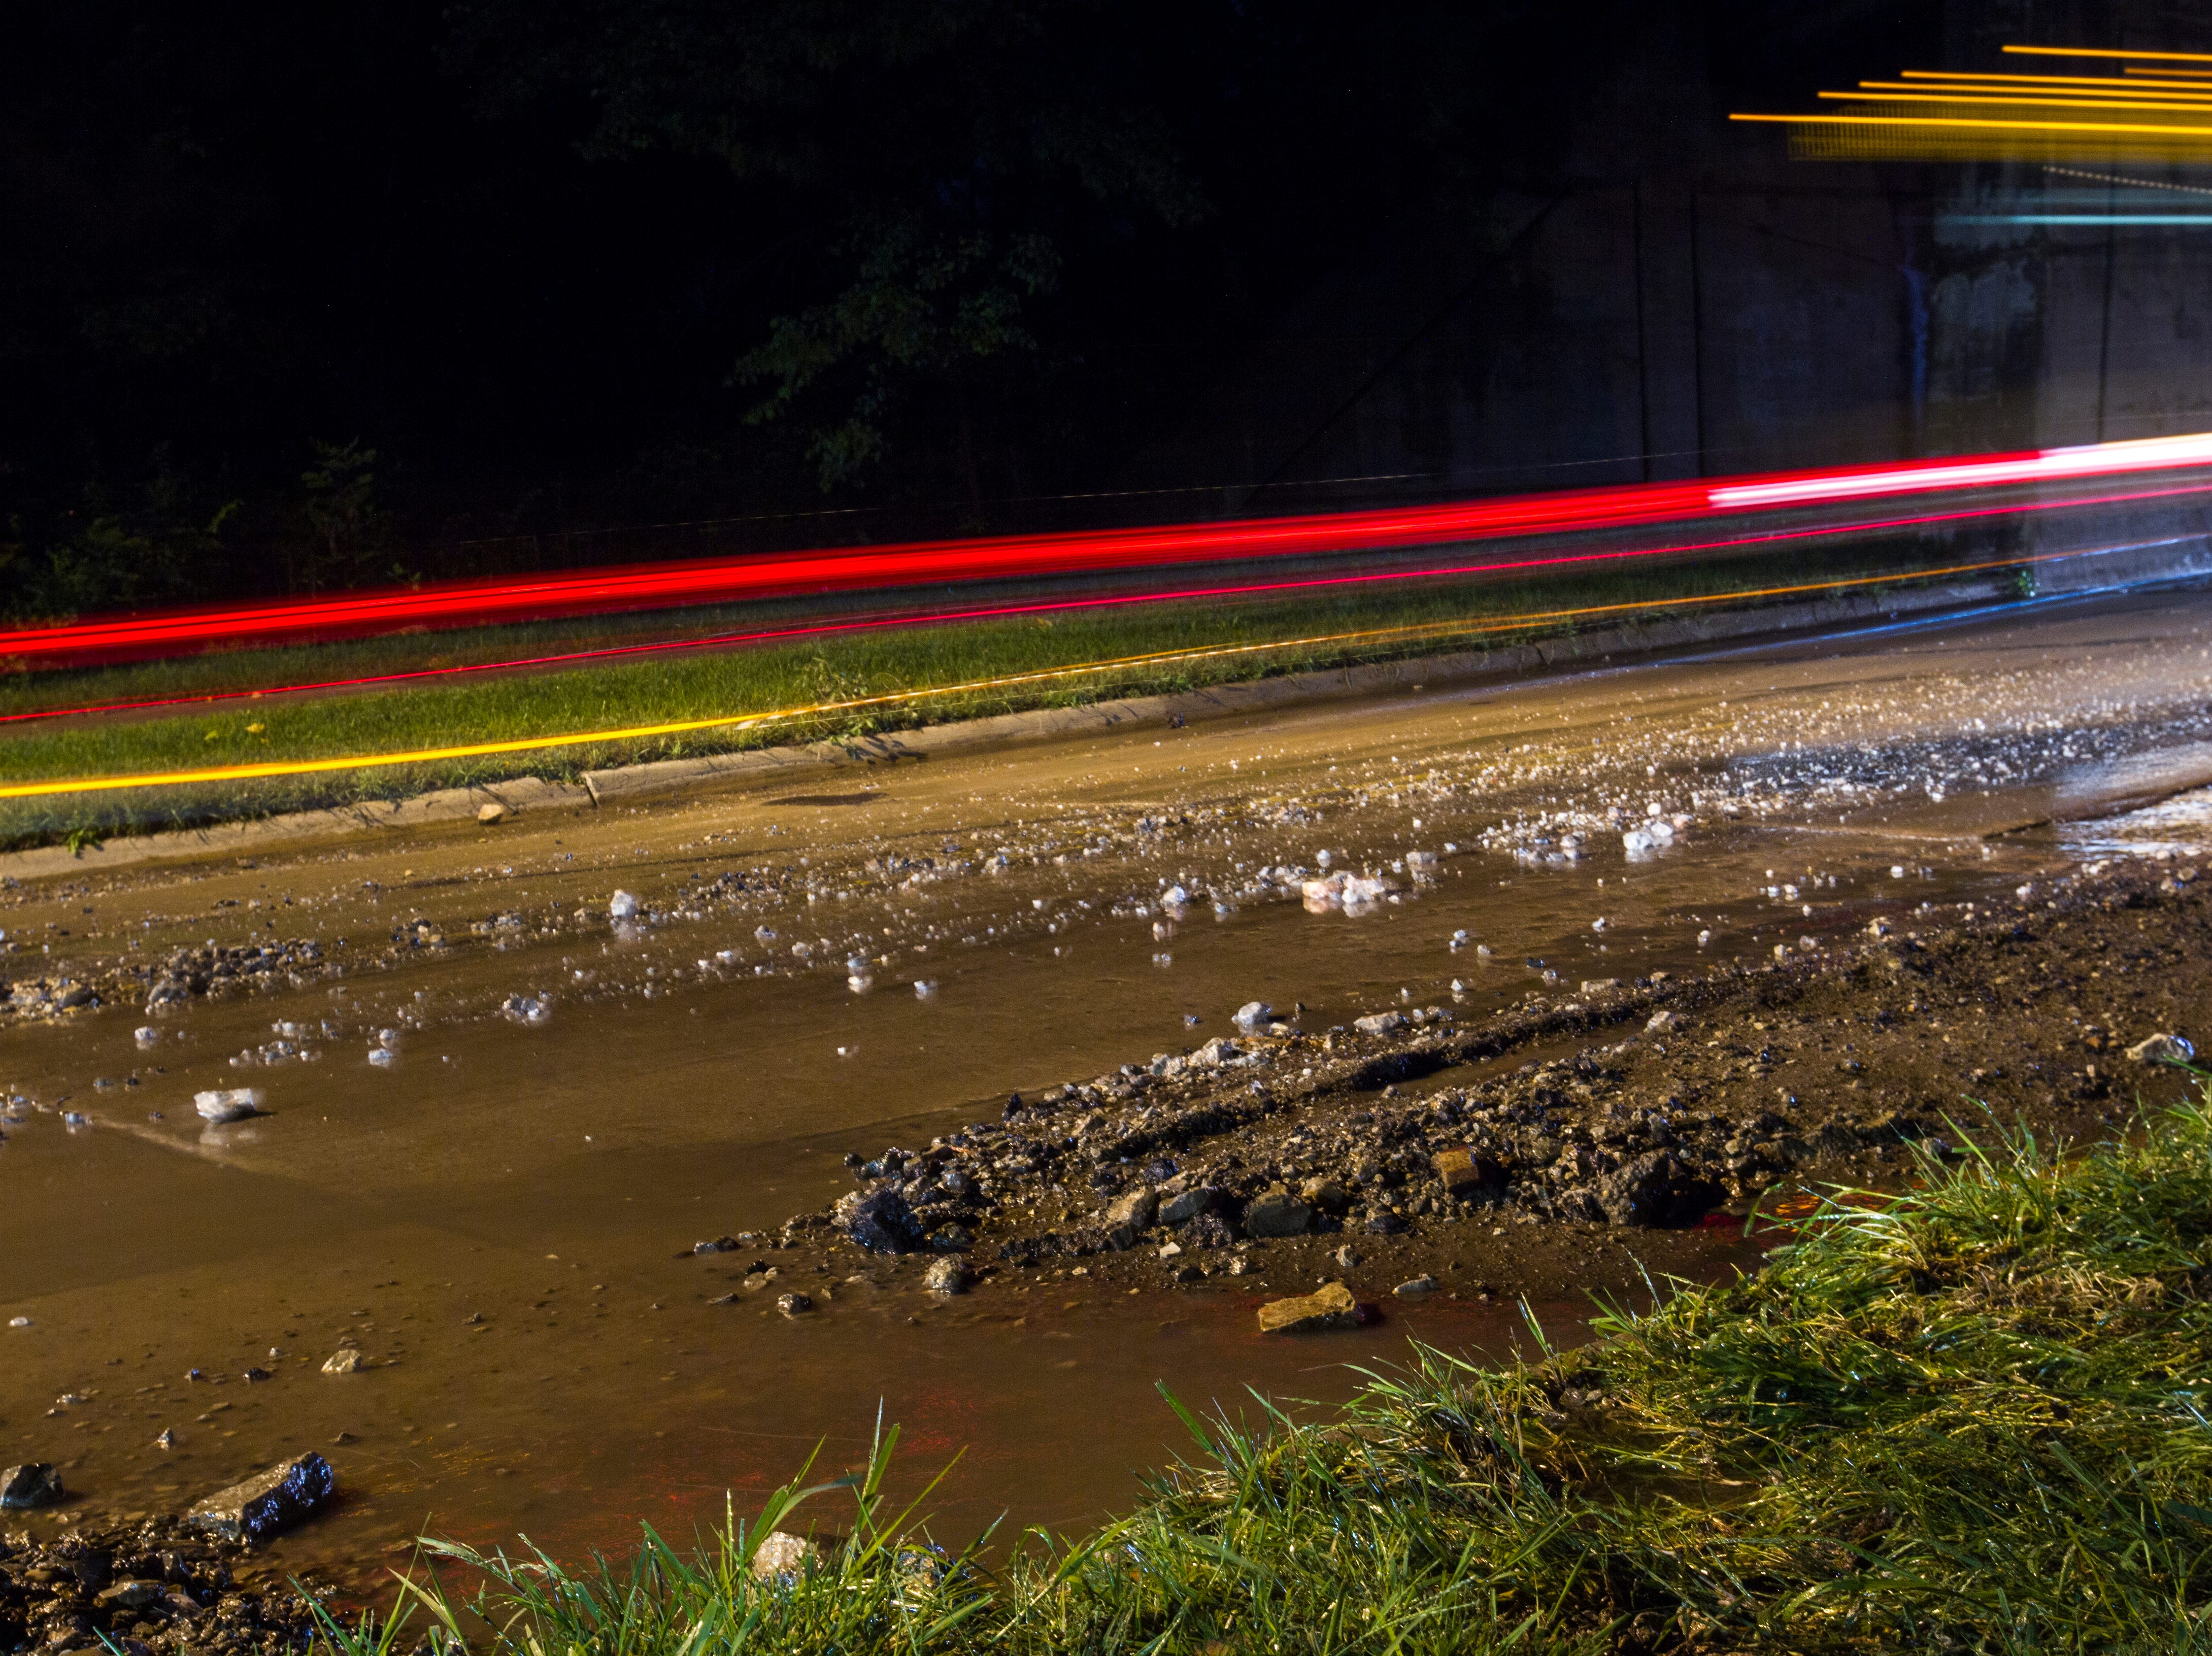 Mud and rocks fill the road during a rain storm on Tuesday, Aug. 28, 2018, on Lower Riverside Drive in Iowa City.